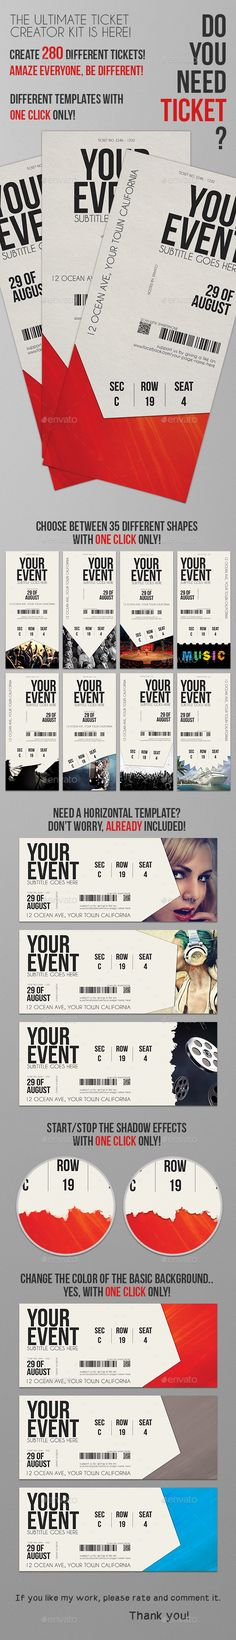 Art Expo Ticket And Event Pass Photoshop Template - $6.00 | Church